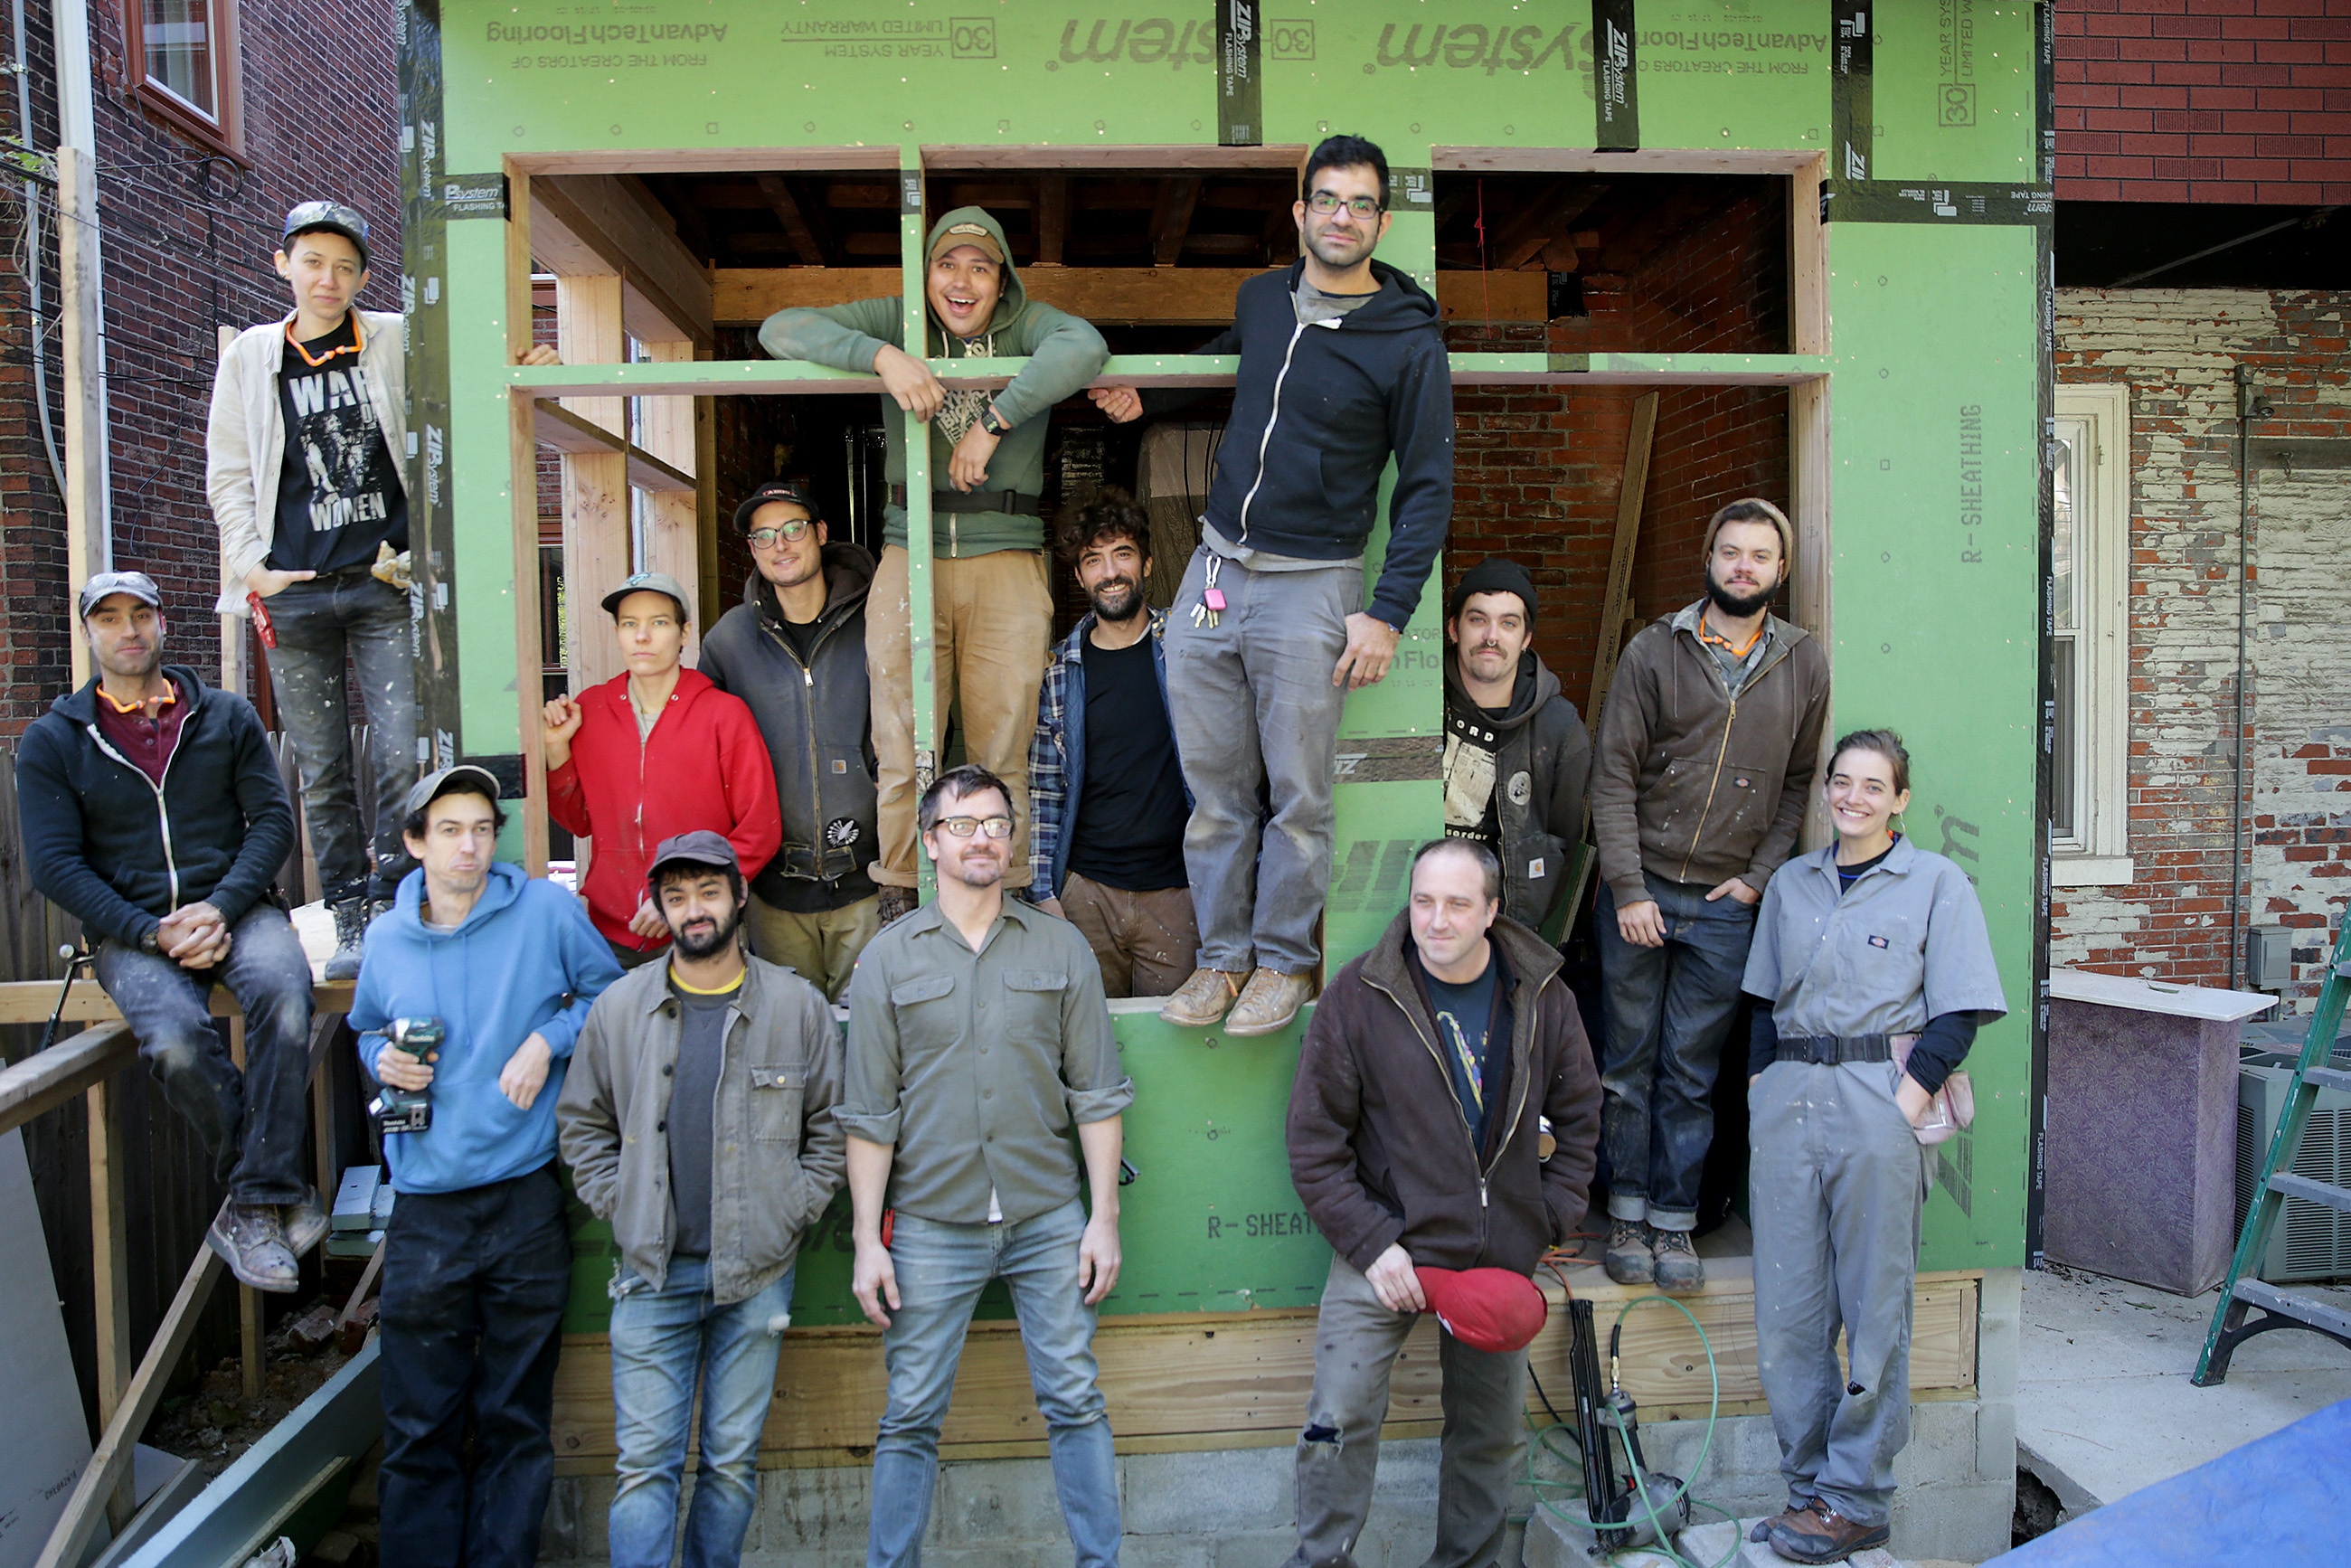 A group of carpenters who will become the coop Hivemind Philly, pose at a property on the 4200 block of Regent Square in Philadelphia, PA on October 24, 2018. Left to right: David Bevacqua, RC Connor, Drew Mitchell, Ashley Arnwine, Zach Ogden, Arthur Zahor, Francisco Grajales, Michael Heinzler, Roman Salcic, Ricky Perez, James Strauss, Spencer Dilday, Sampson Smoot, and Jamie Blair.